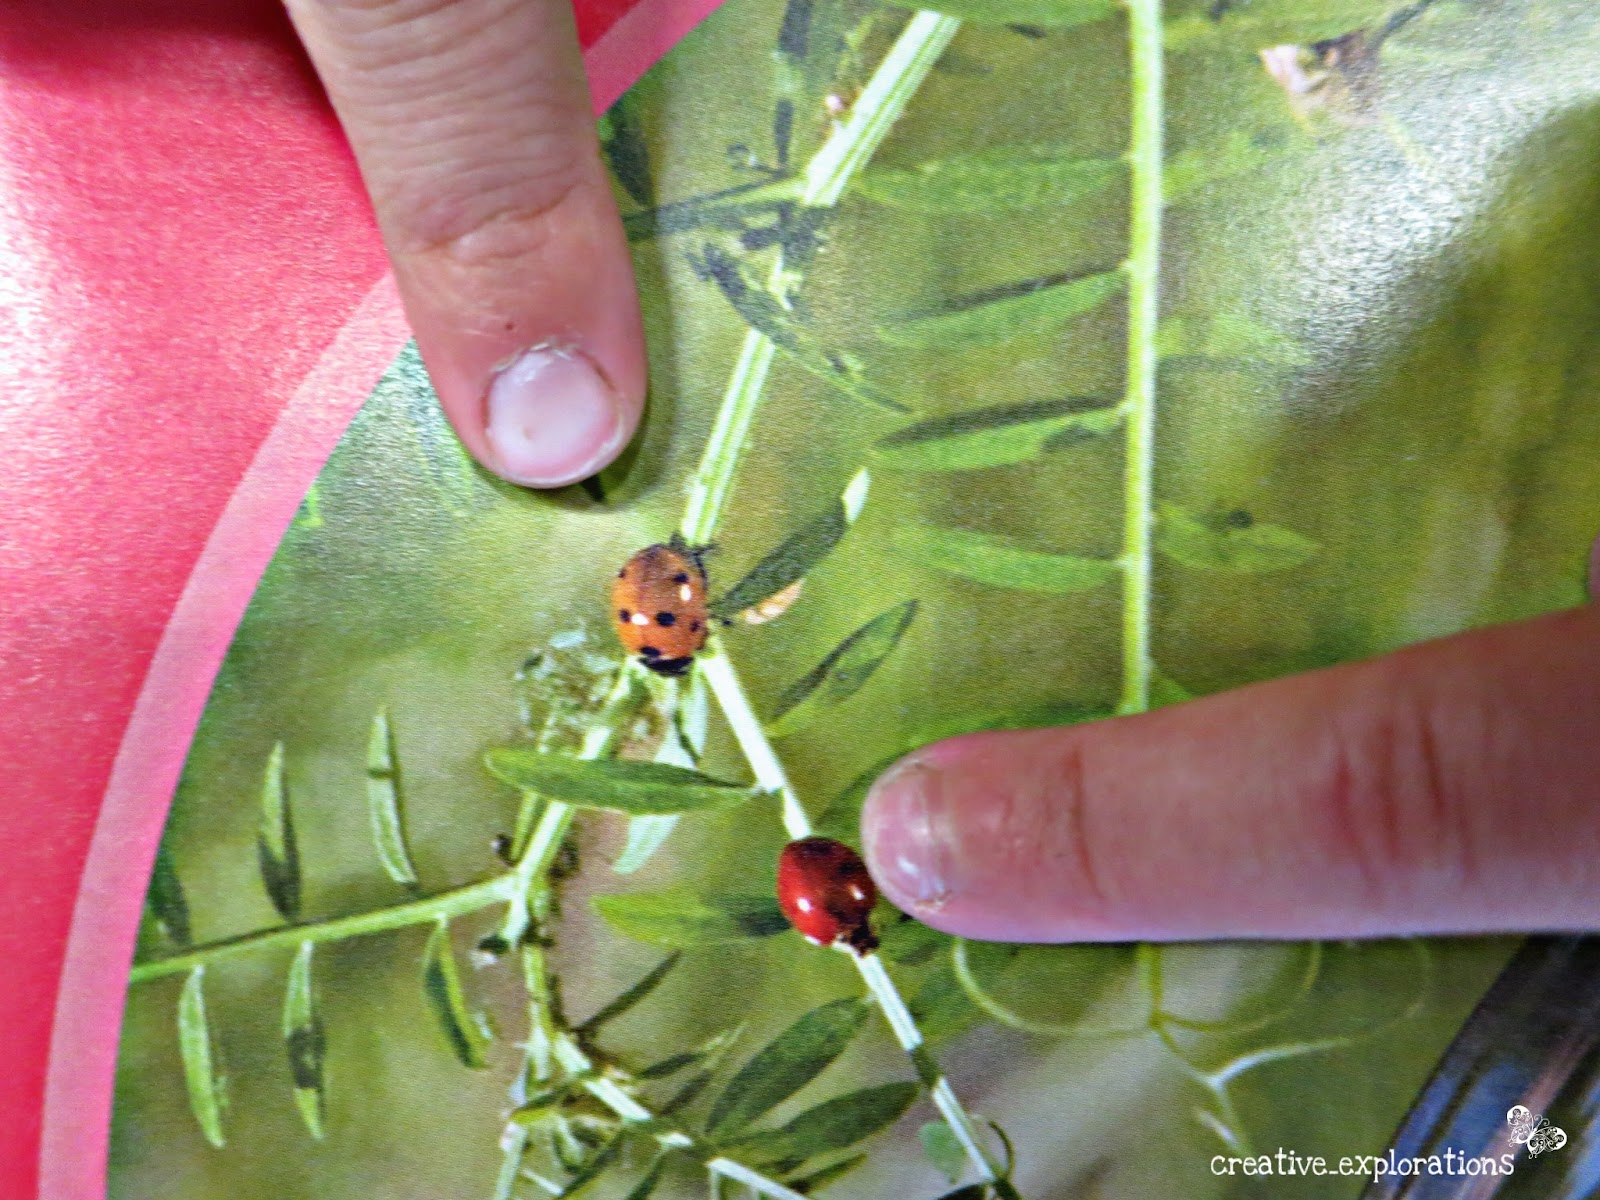 inquiry spaces and wondering places looking closely at ladybugs